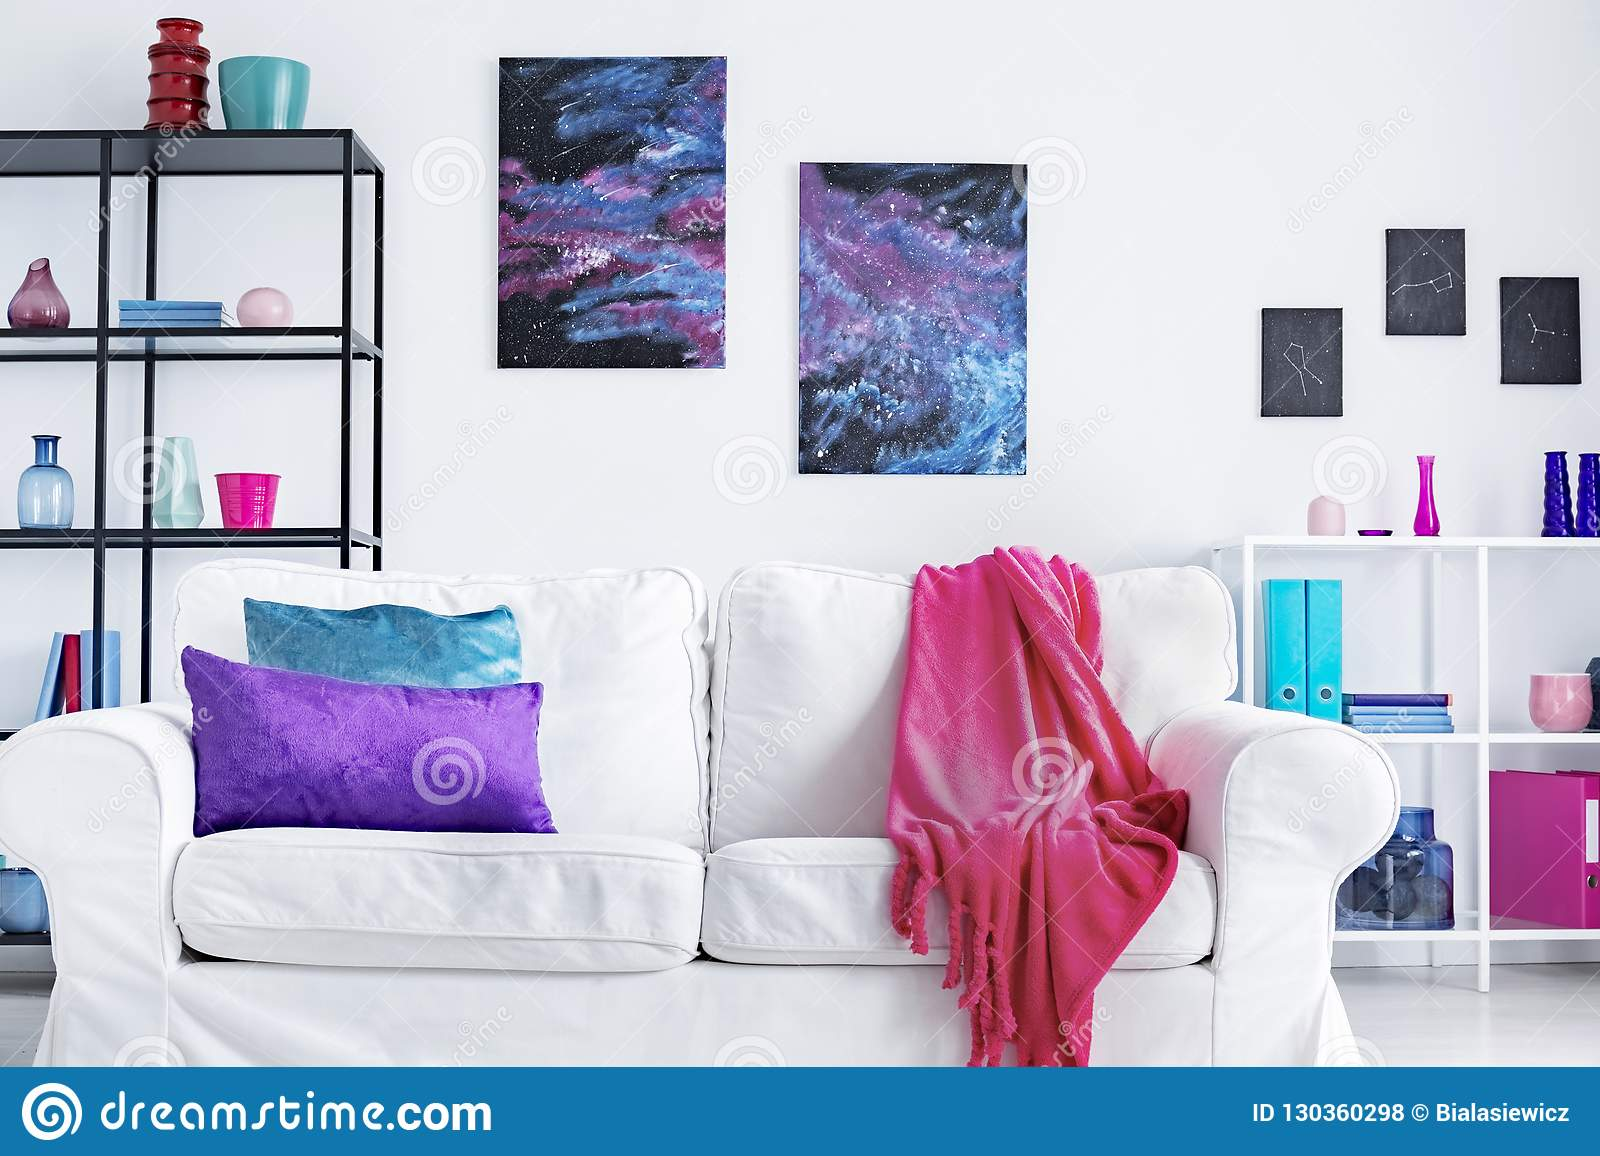 Closeup of white comfortable couch with pink blanket and purple and blue pillows in modern living room interior, real photo